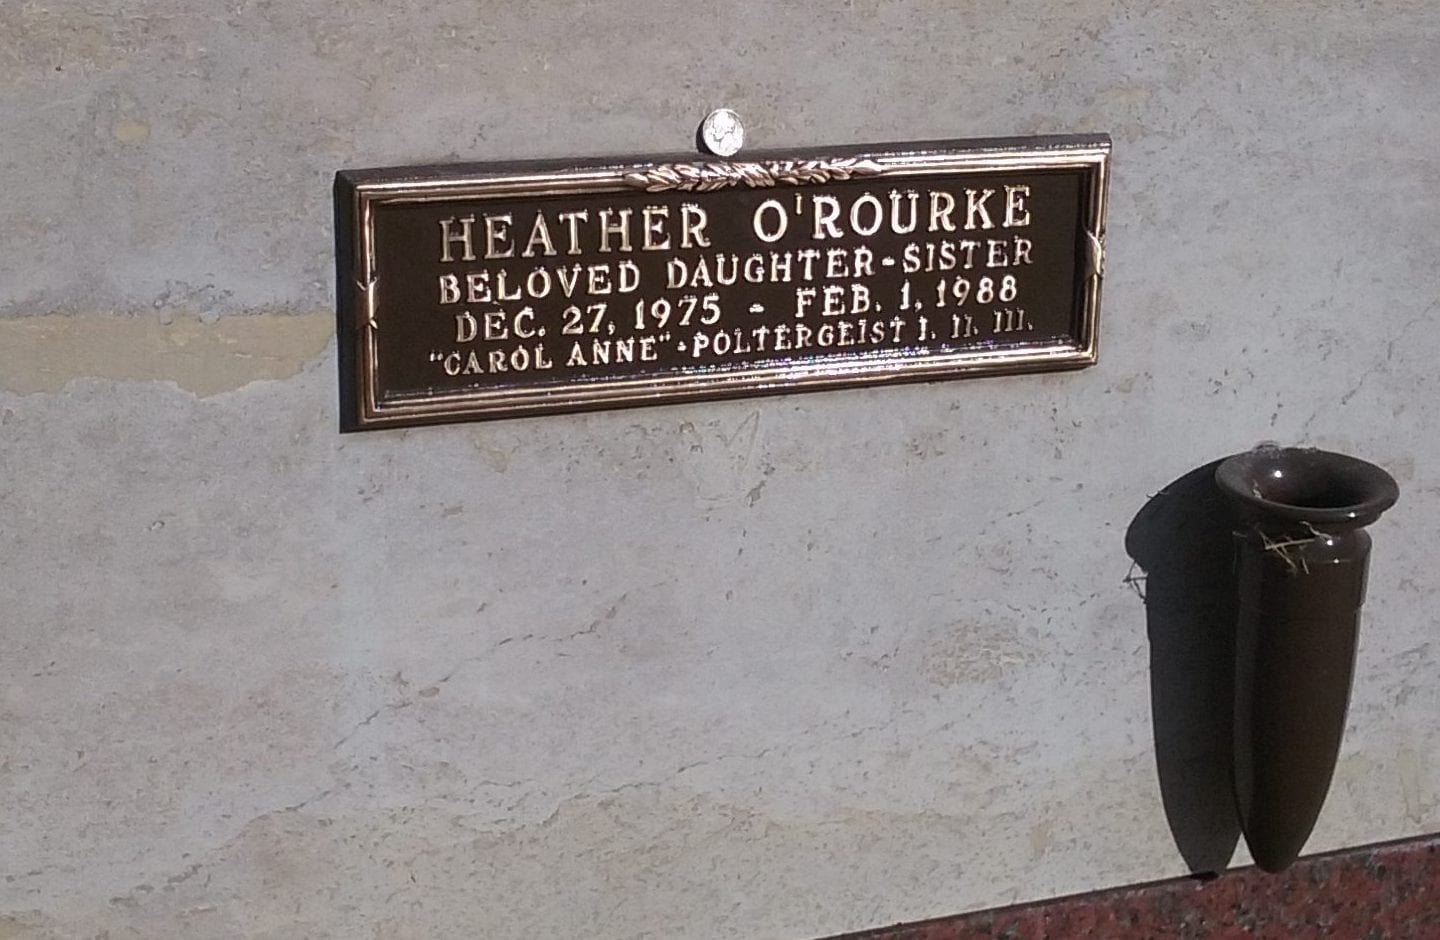 the grave stone of Heather O'Rourke, the actress who played Carol Anne in Poltergeist